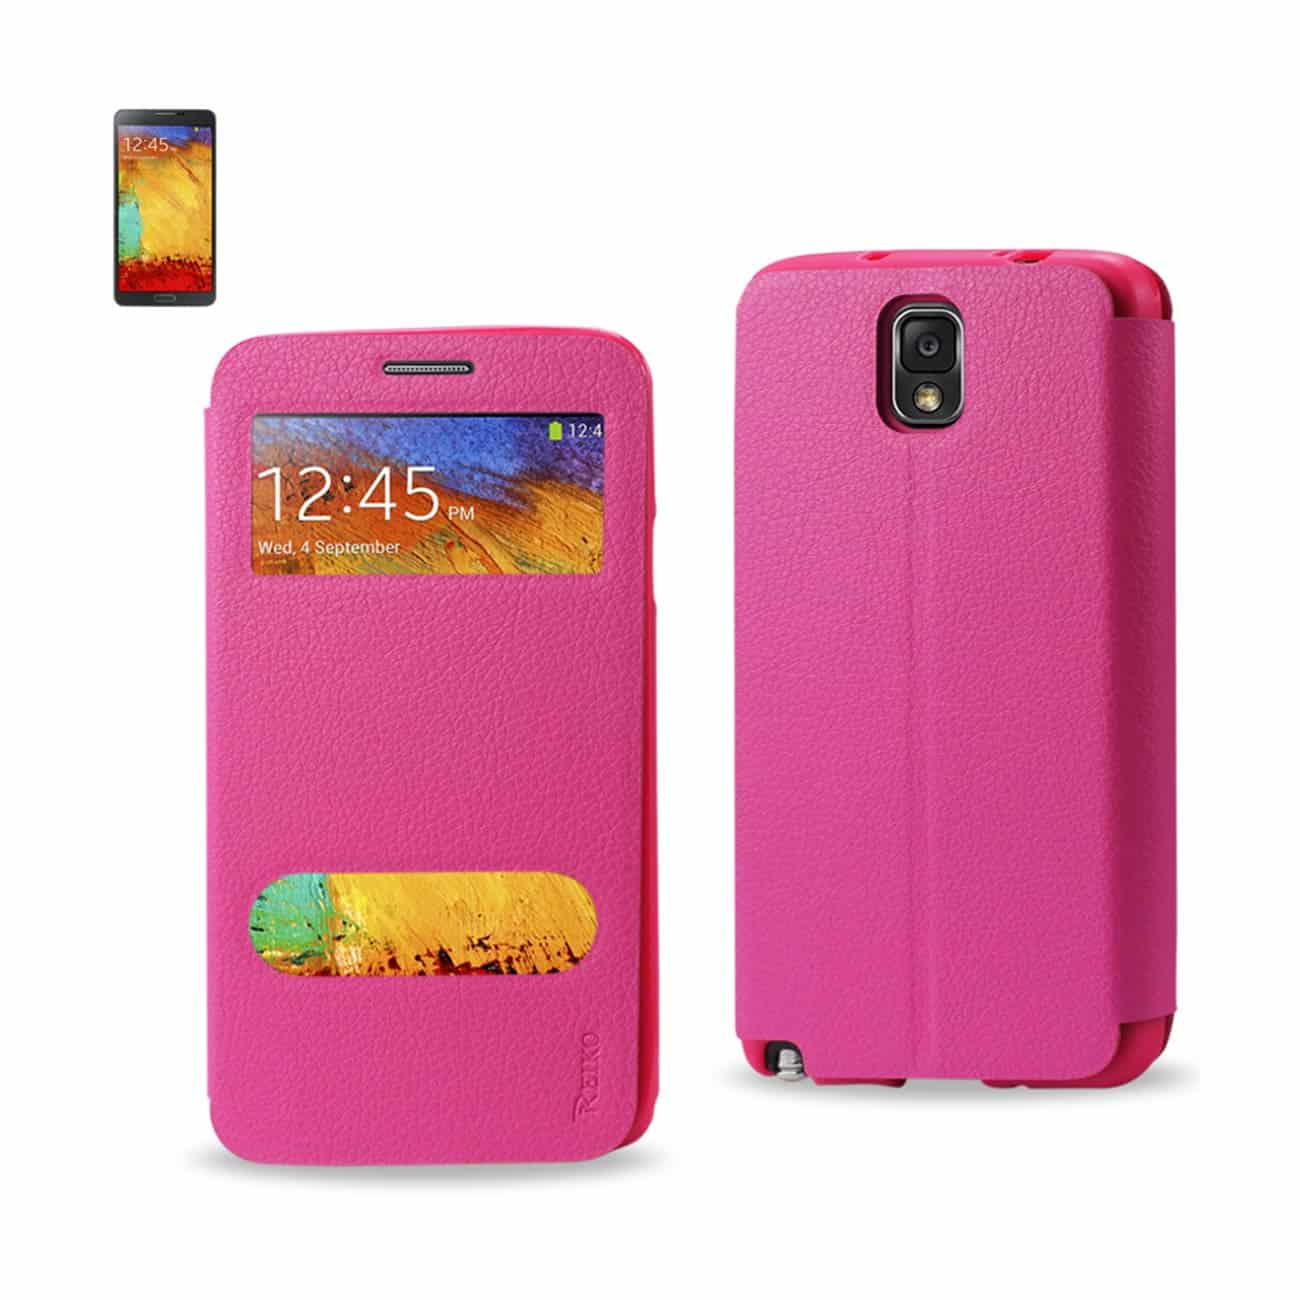 SAMSUNG GALAXY NOTE 3 WINDOW FLIP FOLIO CASE IN HOT PINK